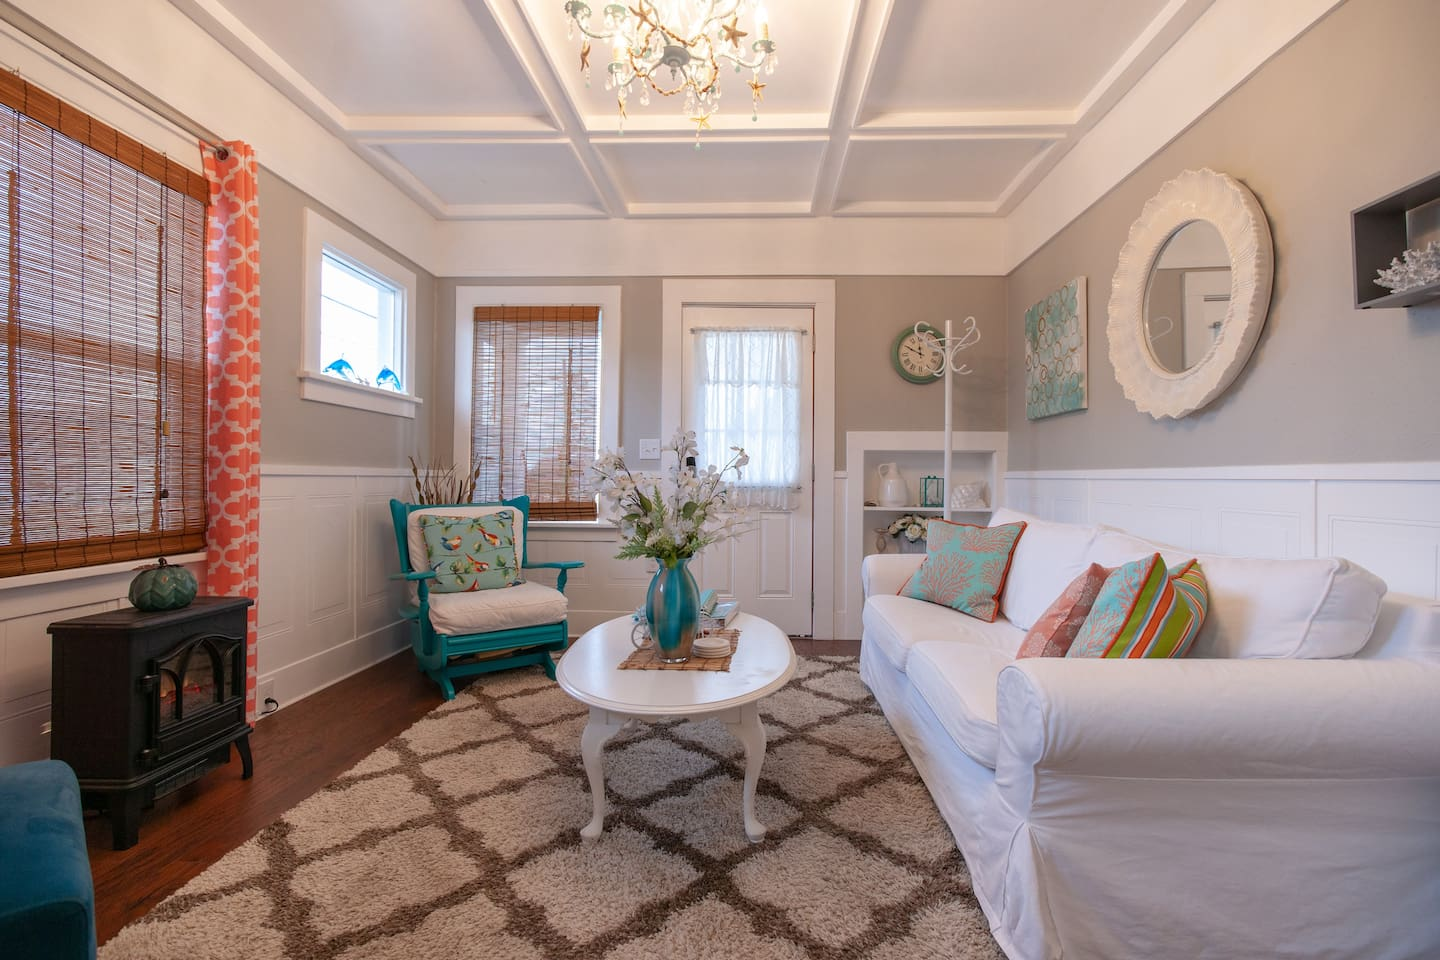 Welcome to the SeaShell Cottage! Beautifully styled craftsman cottage completely decorated and outfitted with a seashell theme.